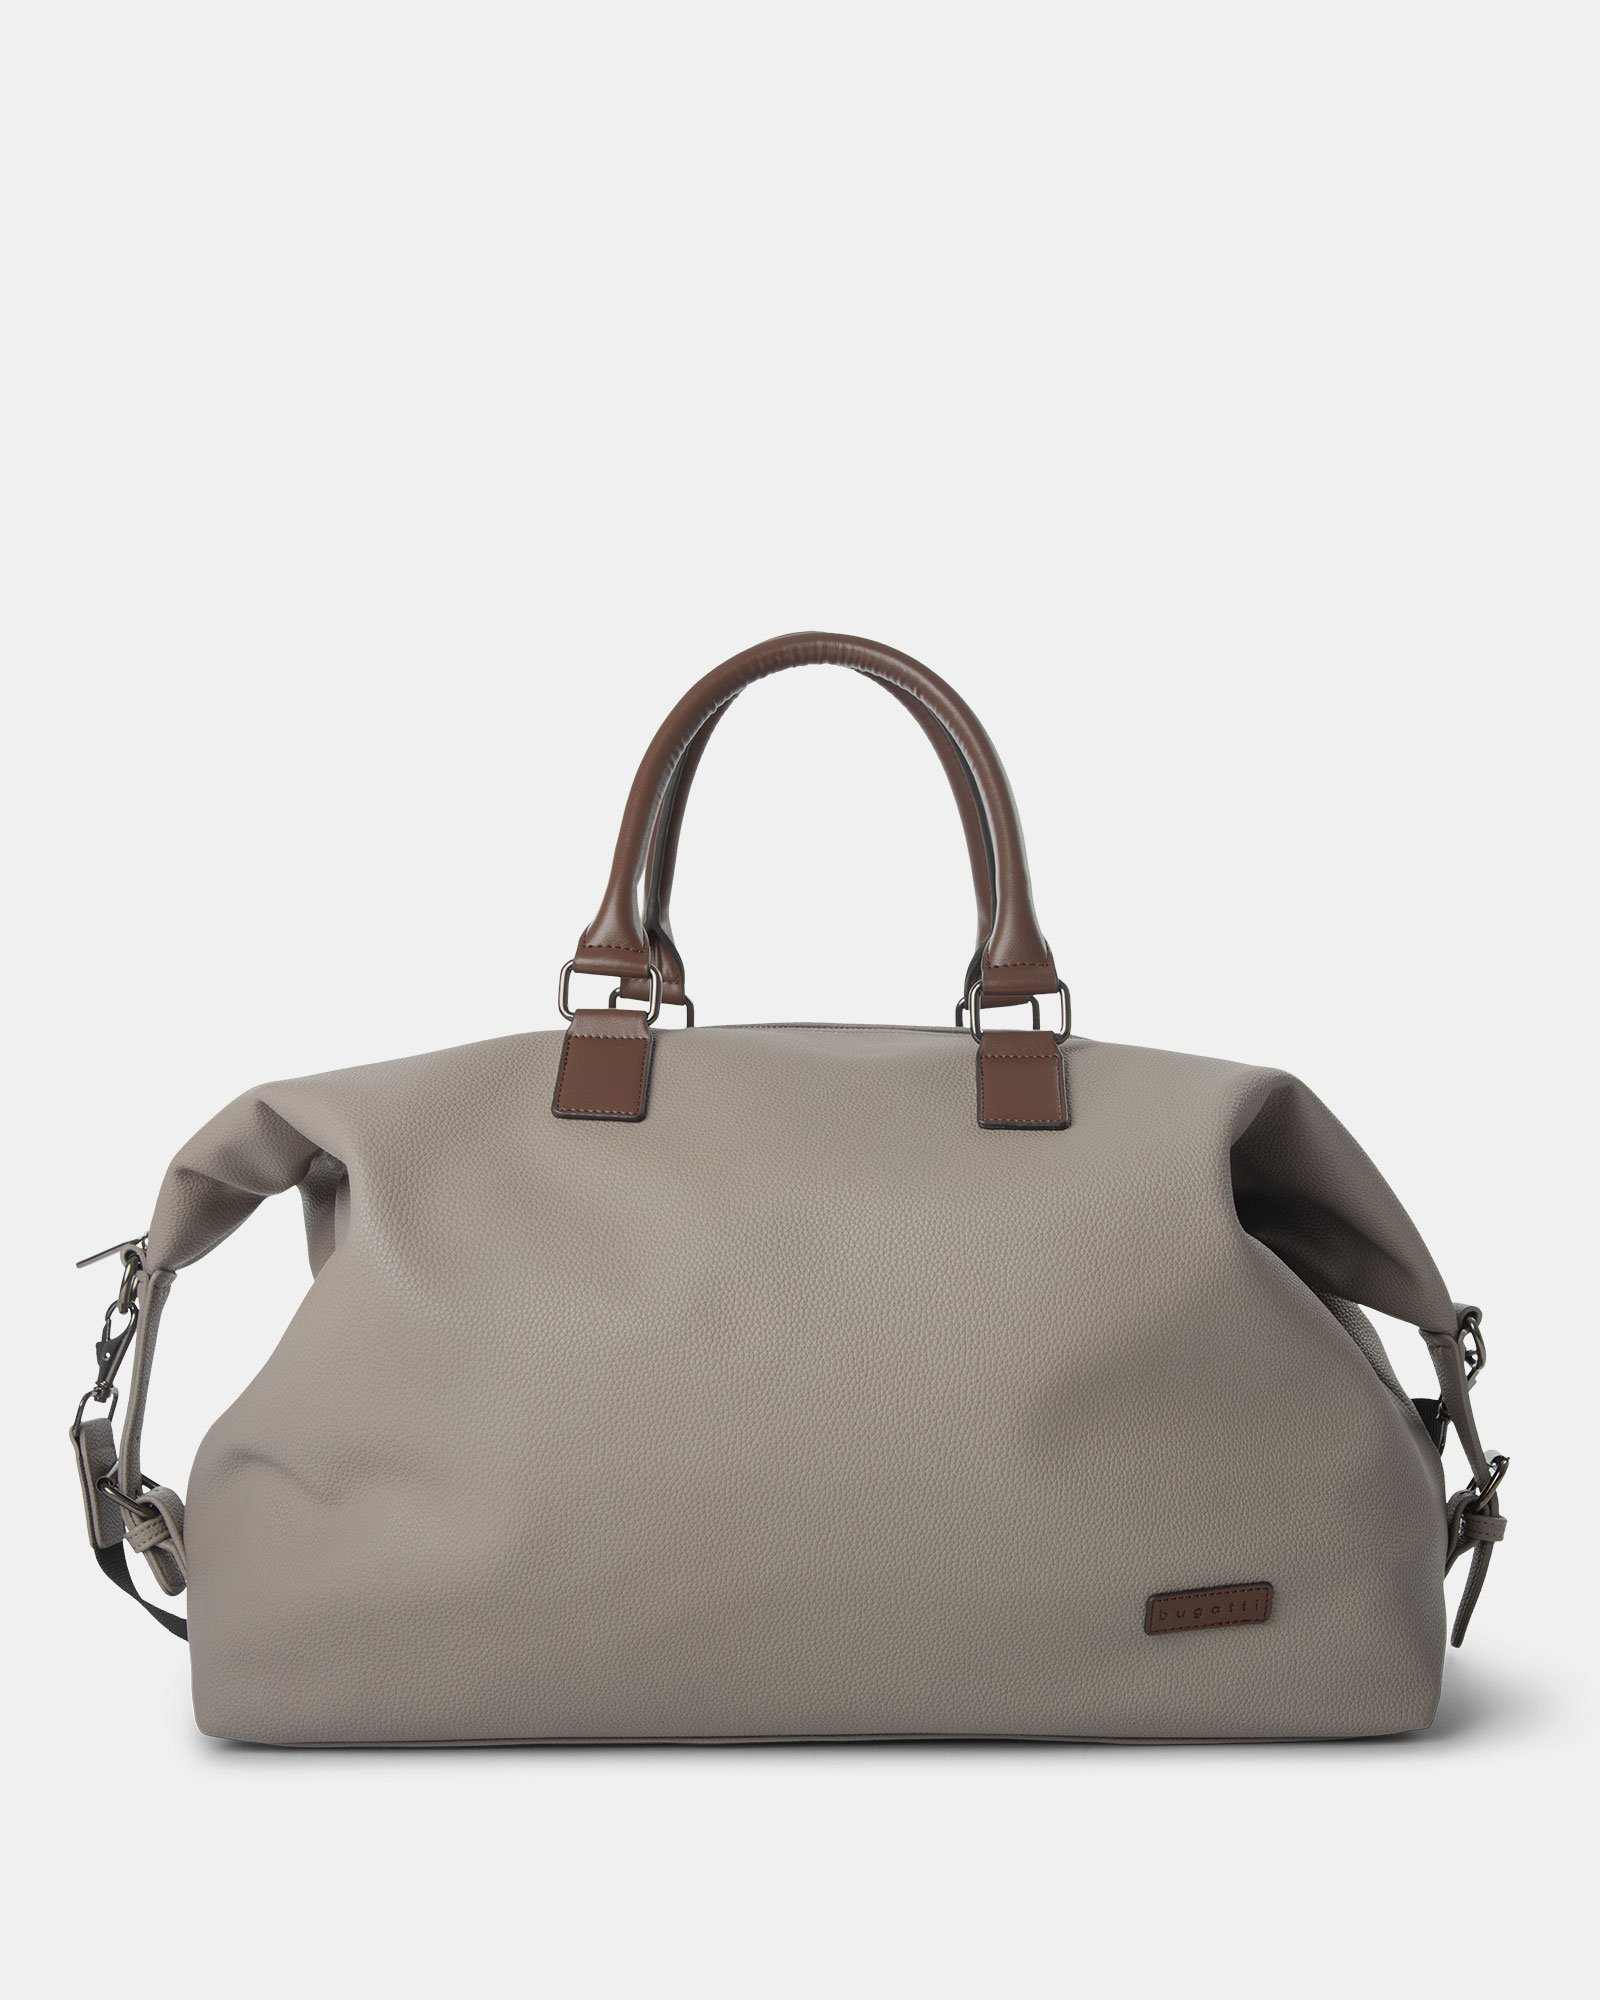 Contrast - Duffle Bag with Adjustable and removable shoulder strap - Grey - Bugatti - Zoom